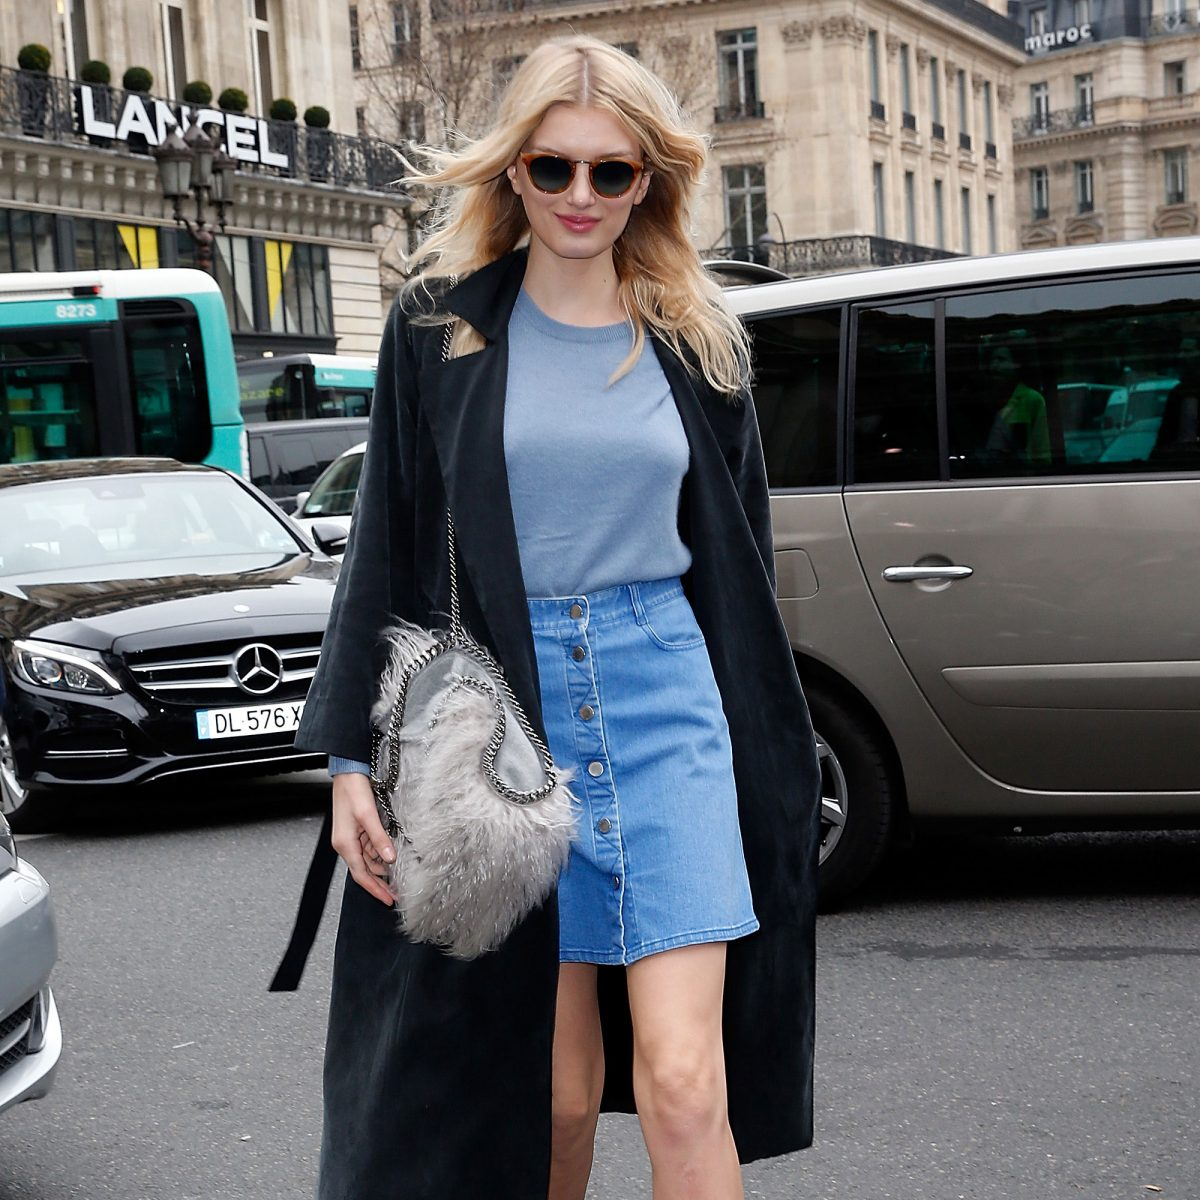 What a waist: 17 high-waisted pieces you need now